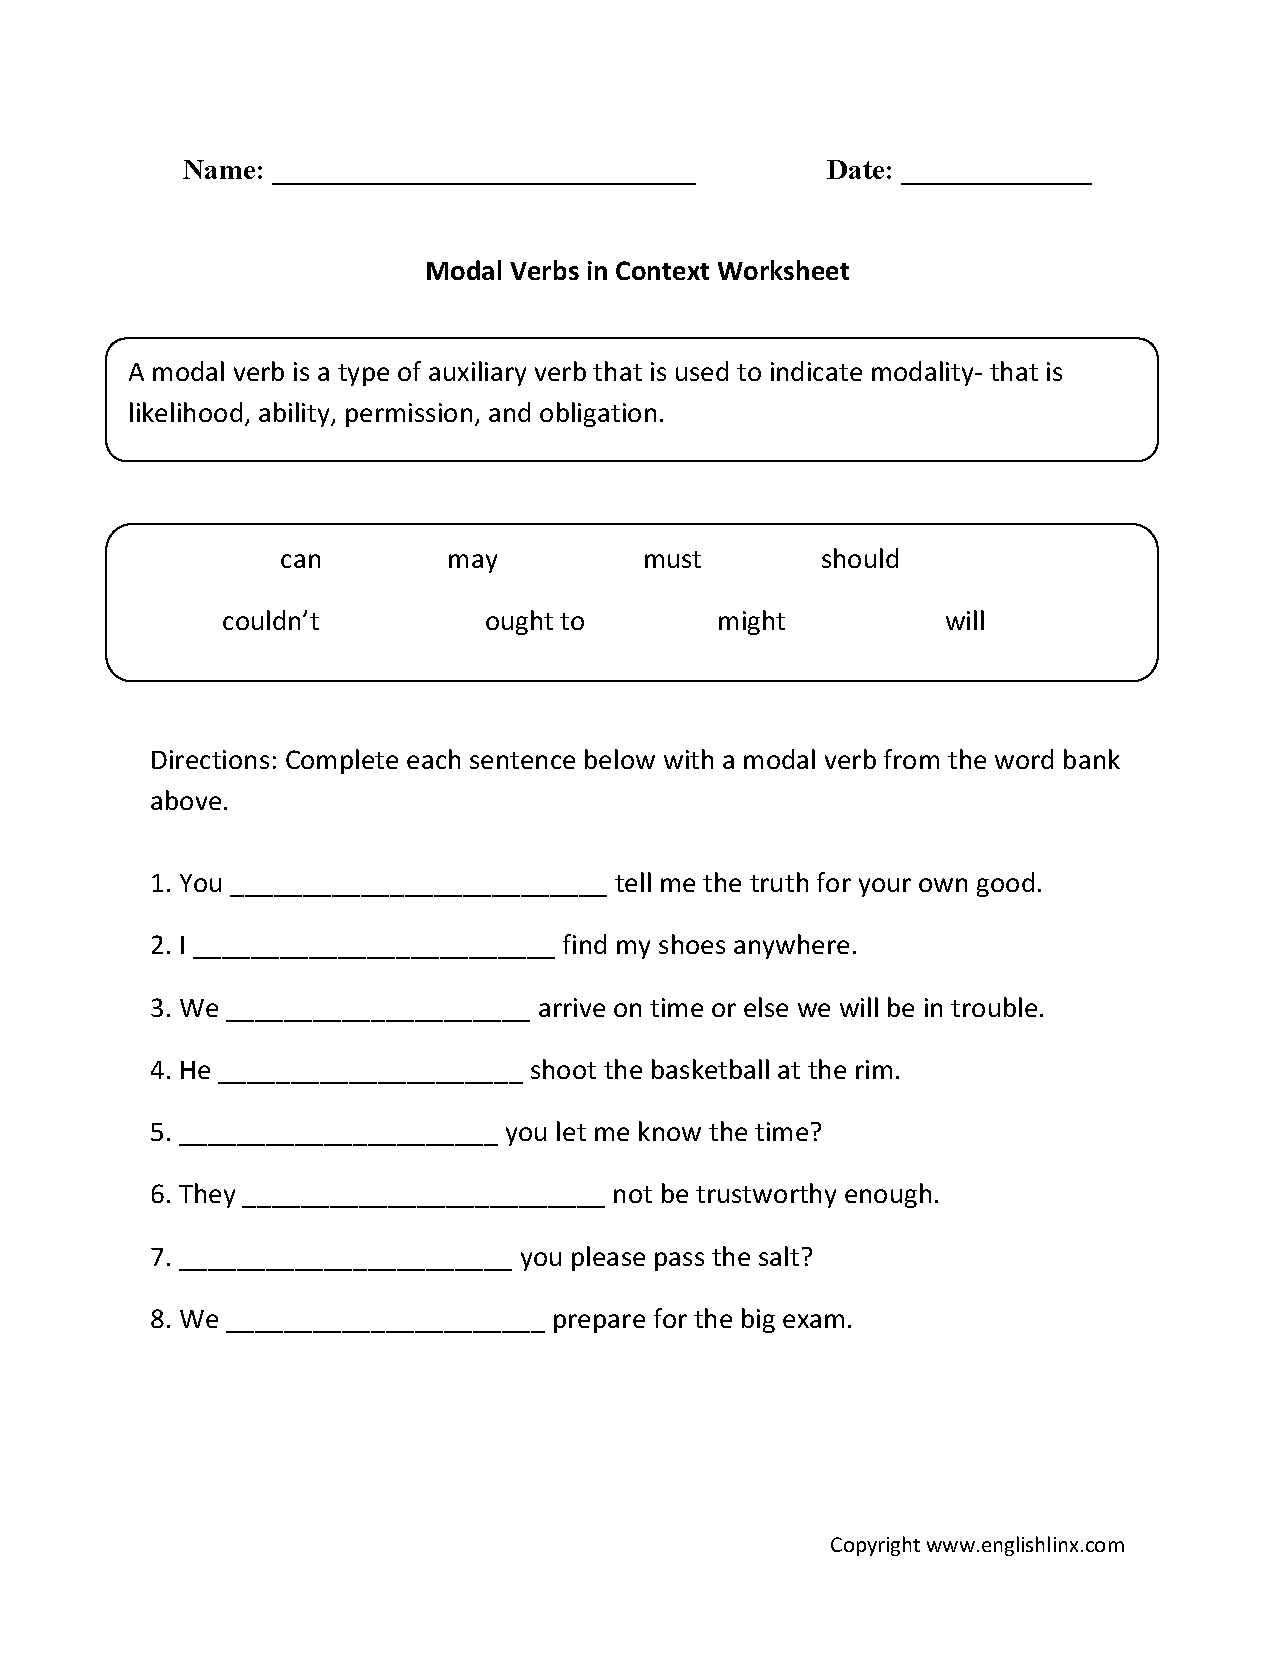 Aldiablosus  Outstanding Worksheet For Verbs  Coffemix With Great Englishlinxcom  Verbs Worksheets With Beautiful Chemistry Unit  Worksheet  Also Operations With Exponents Worksheet In Addition Character Study Worksheet And Element Worksheet As Well As Pronoun Agreement Worksheet Additionally Essay Outline Worksheet From Coffemixcom With Aldiablosus  Great Worksheet For Verbs  Coffemix With Beautiful Englishlinxcom  Verbs Worksheets And Outstanding Chemistry Unit  Worksheet  Also Operations With Exponents Worksheet In Addition Character Study Worksheet From Coffemixcom